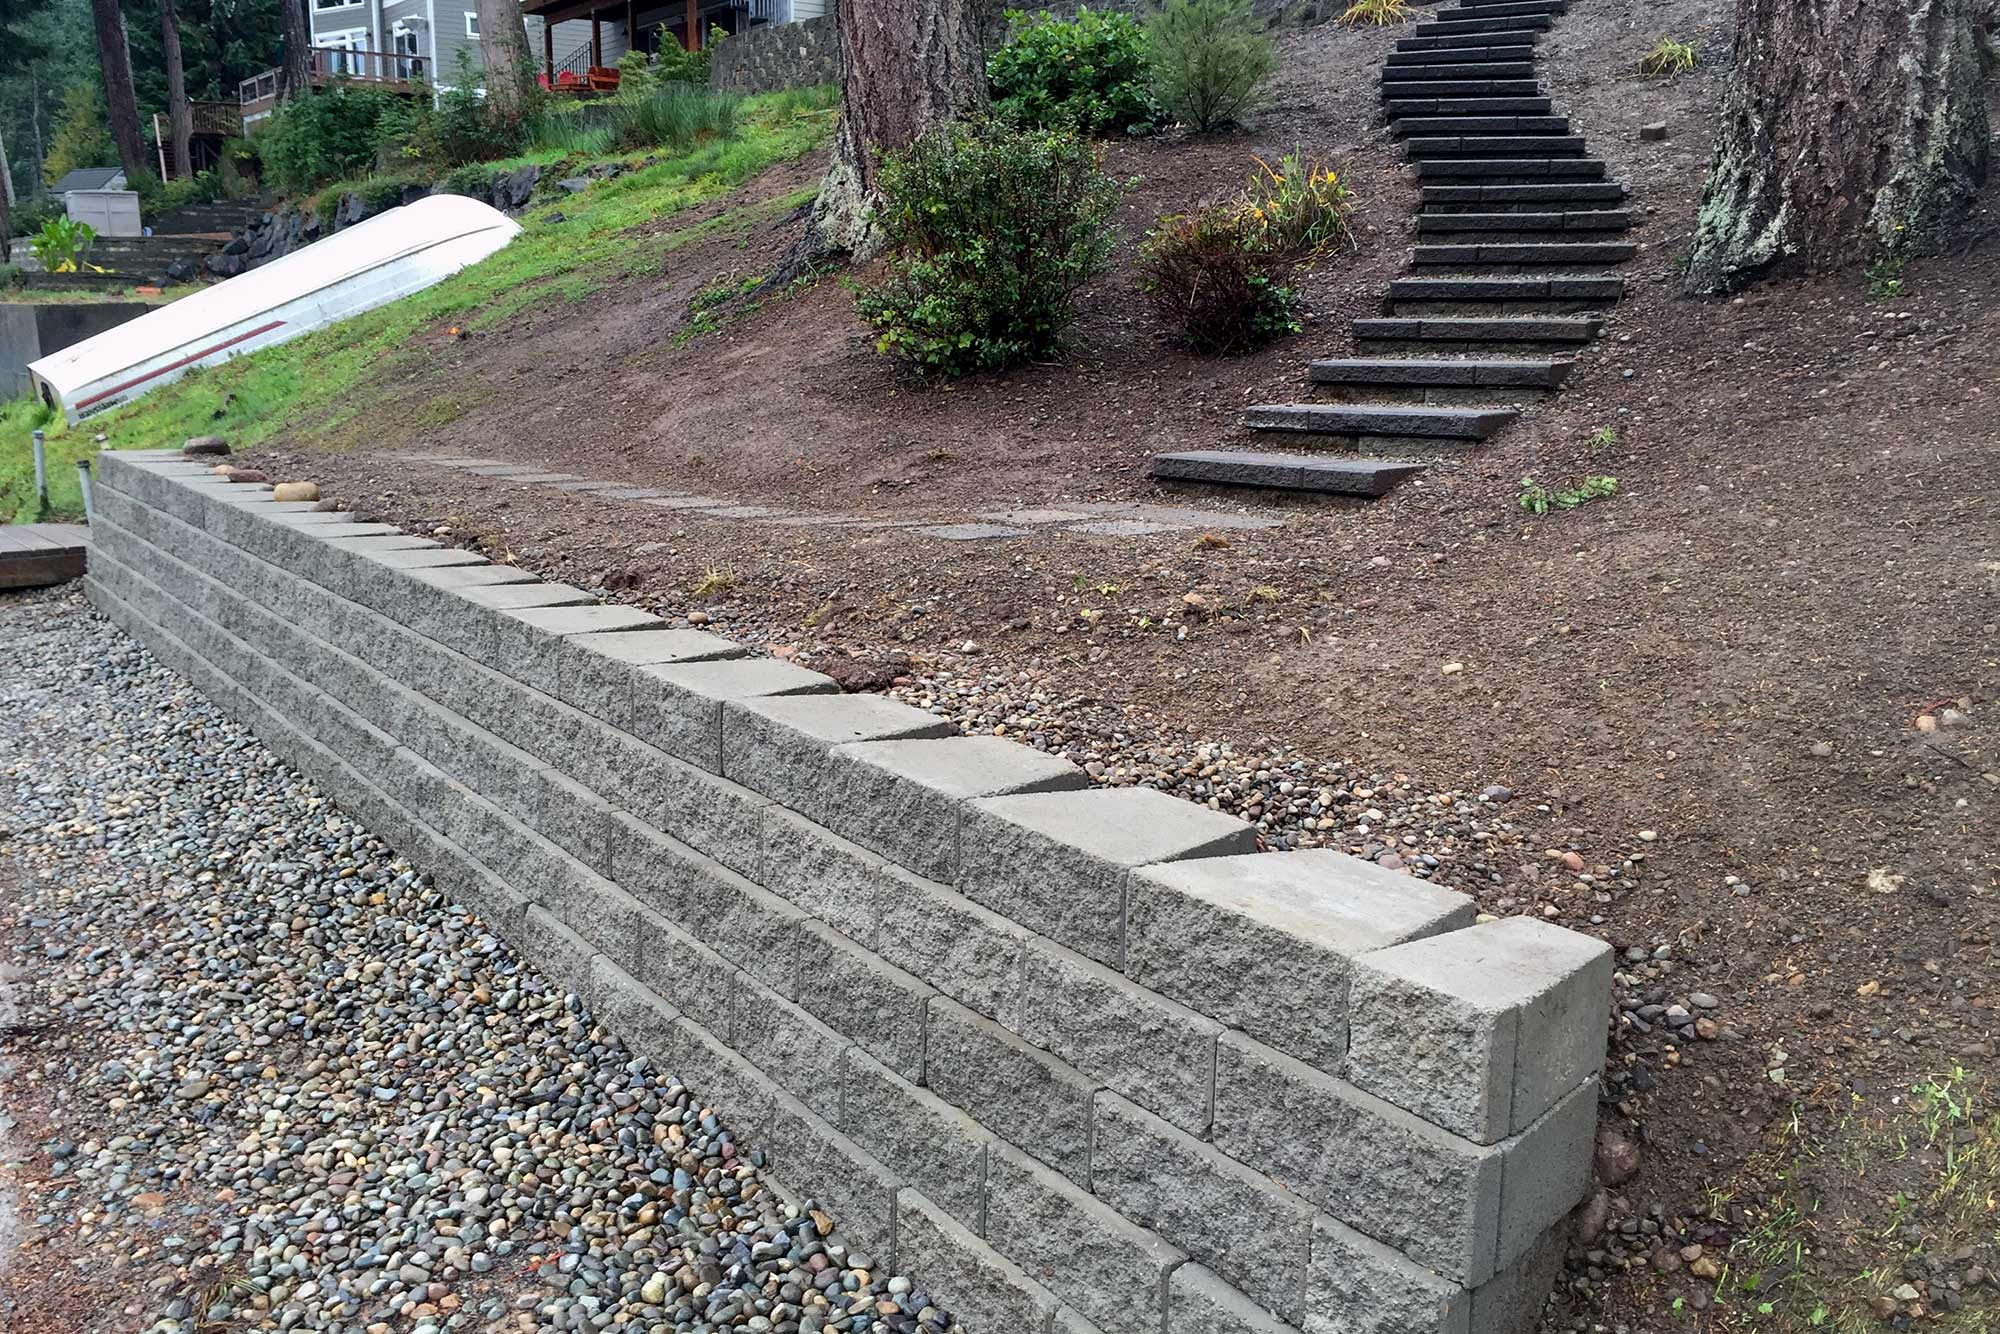 Retaining walls and staircases